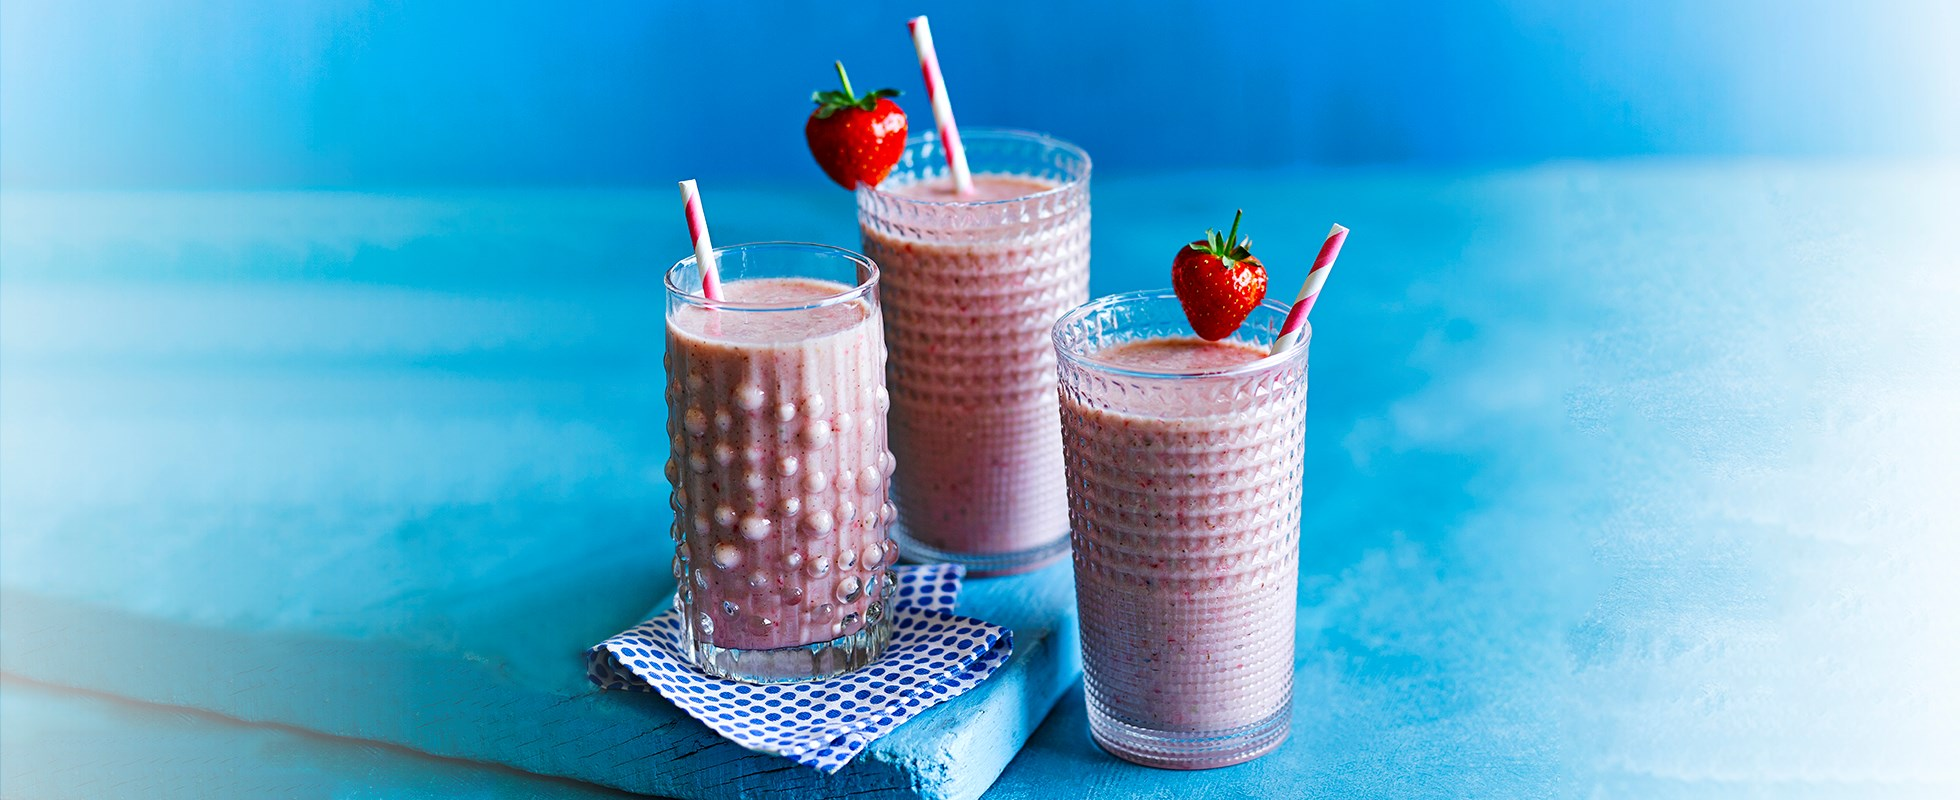 Strawberry and almond breakfast smoothie